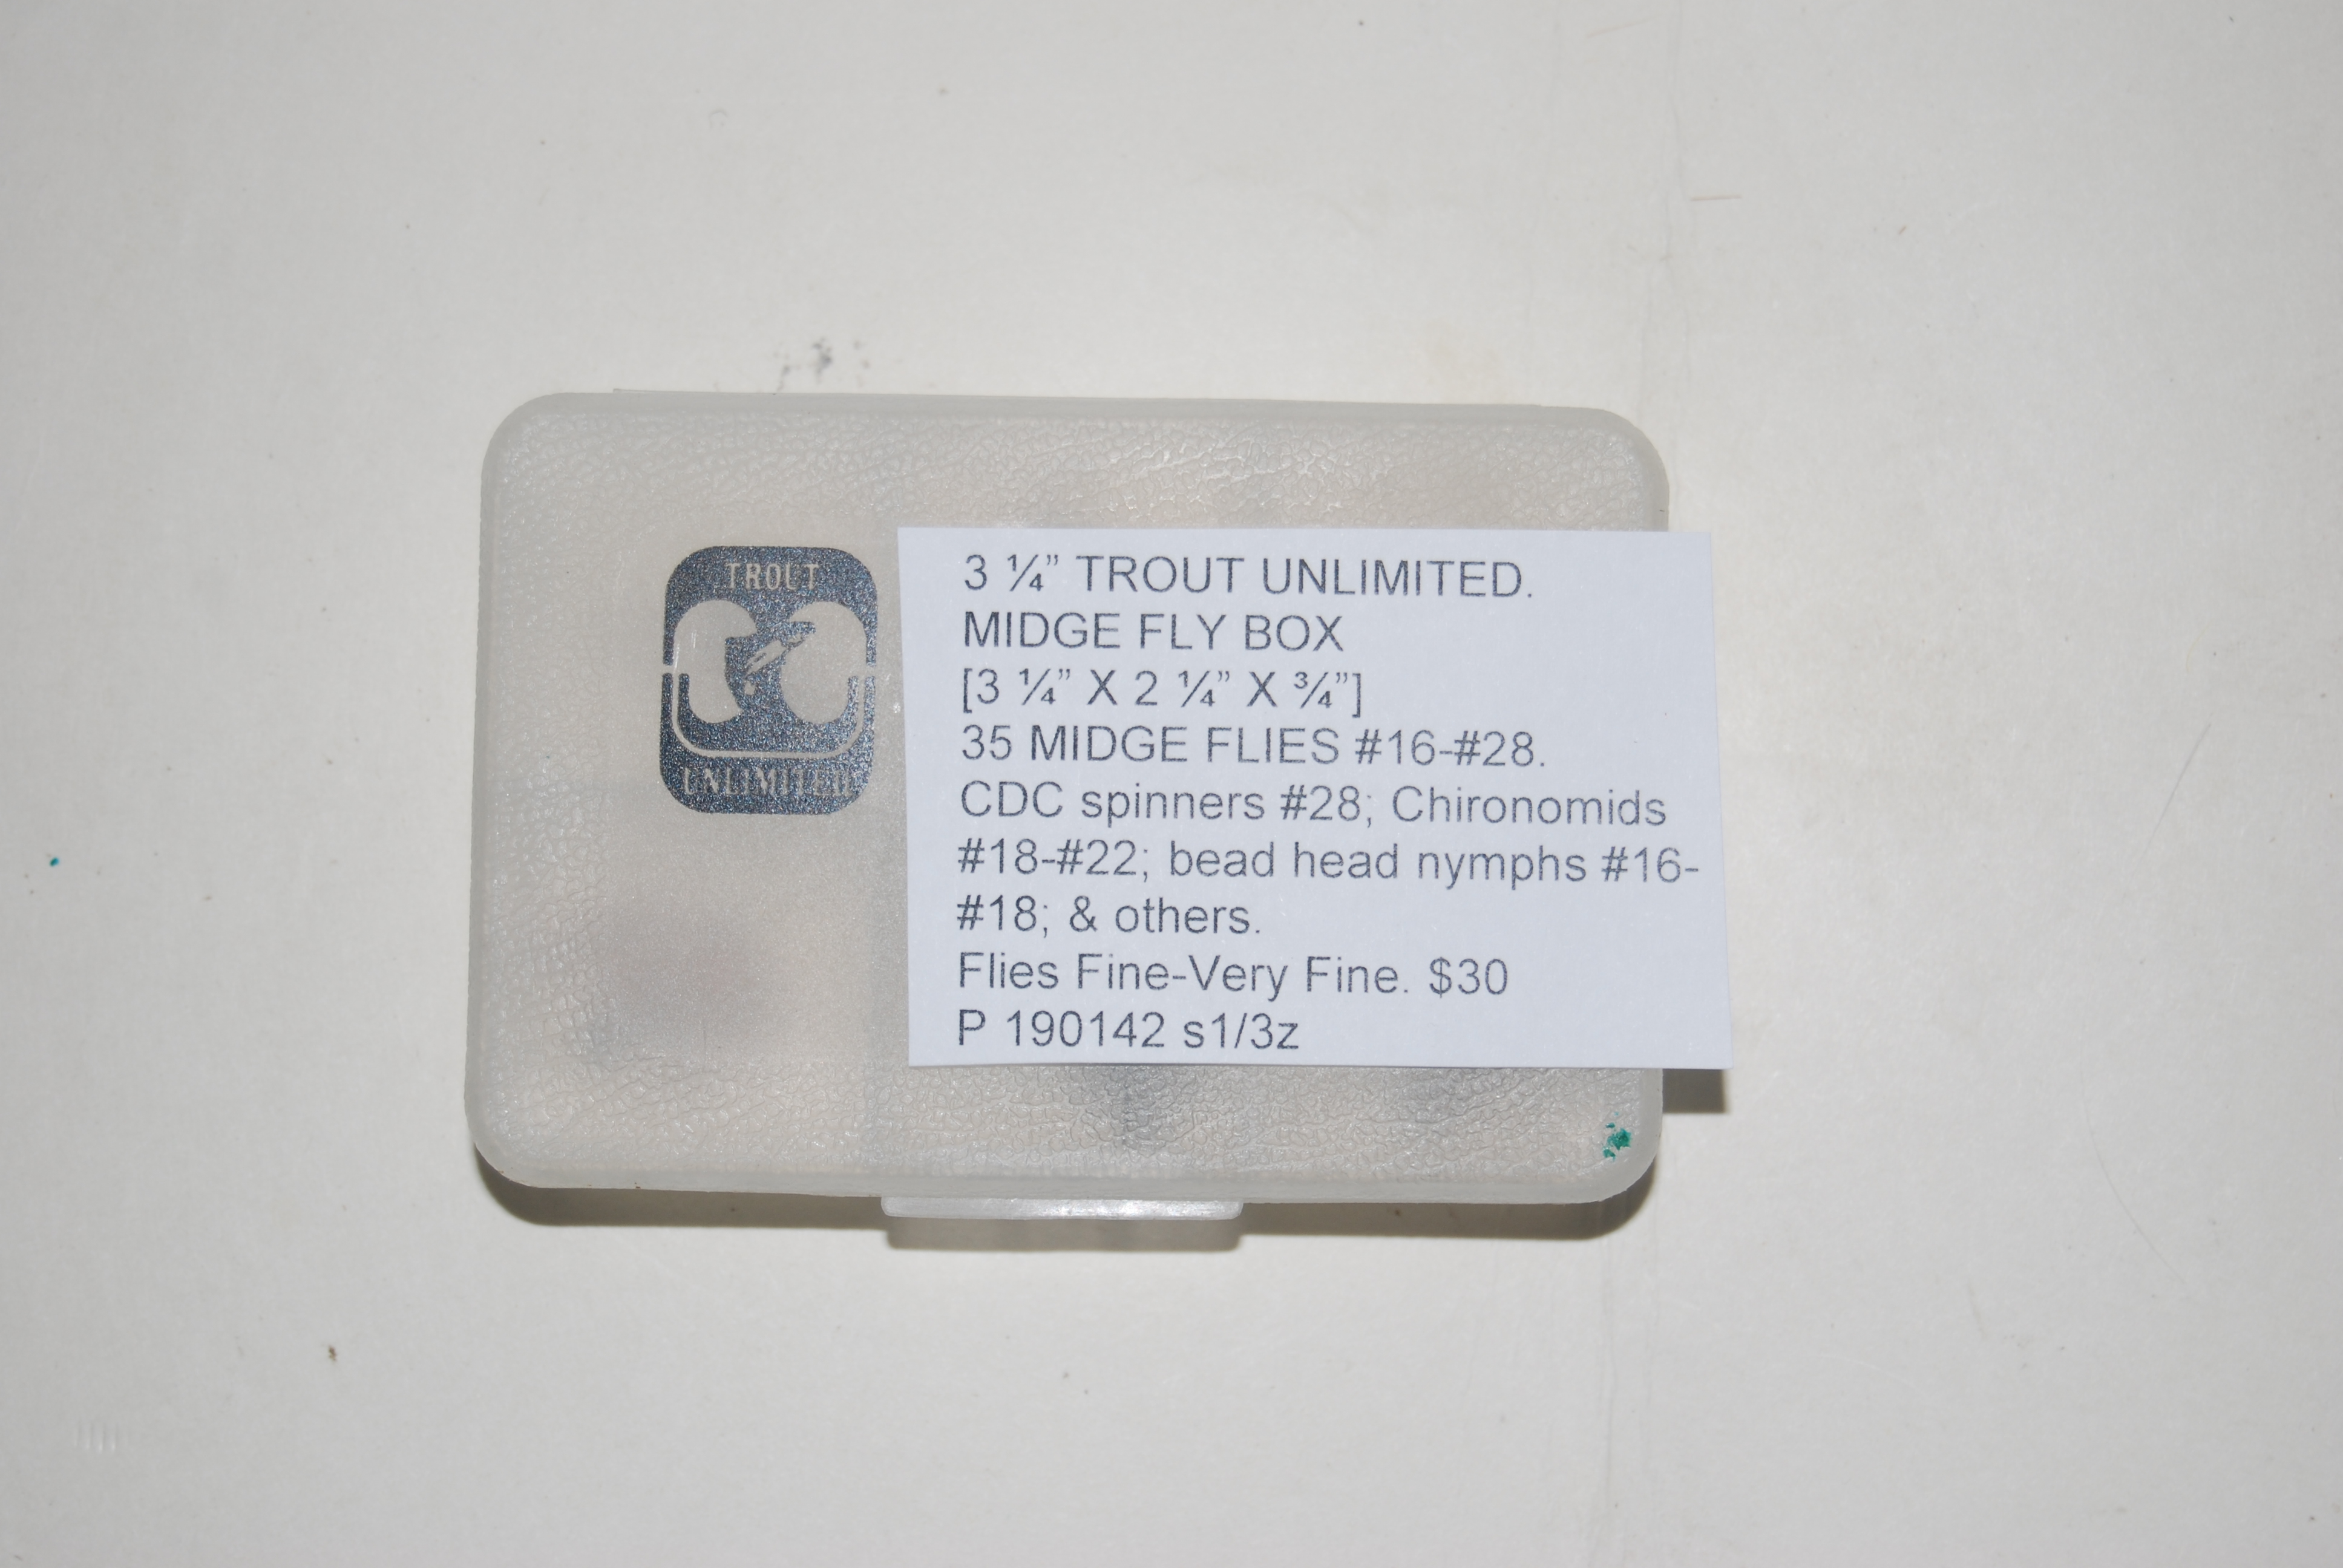 "Image for 3 1/4 in. TROUT UNLIMITED. MIDGE FLY BOX  [3 ¼"" X 2 ¼"" X ¾""]  Plus 35 MIDGE FLIES #16-#28."